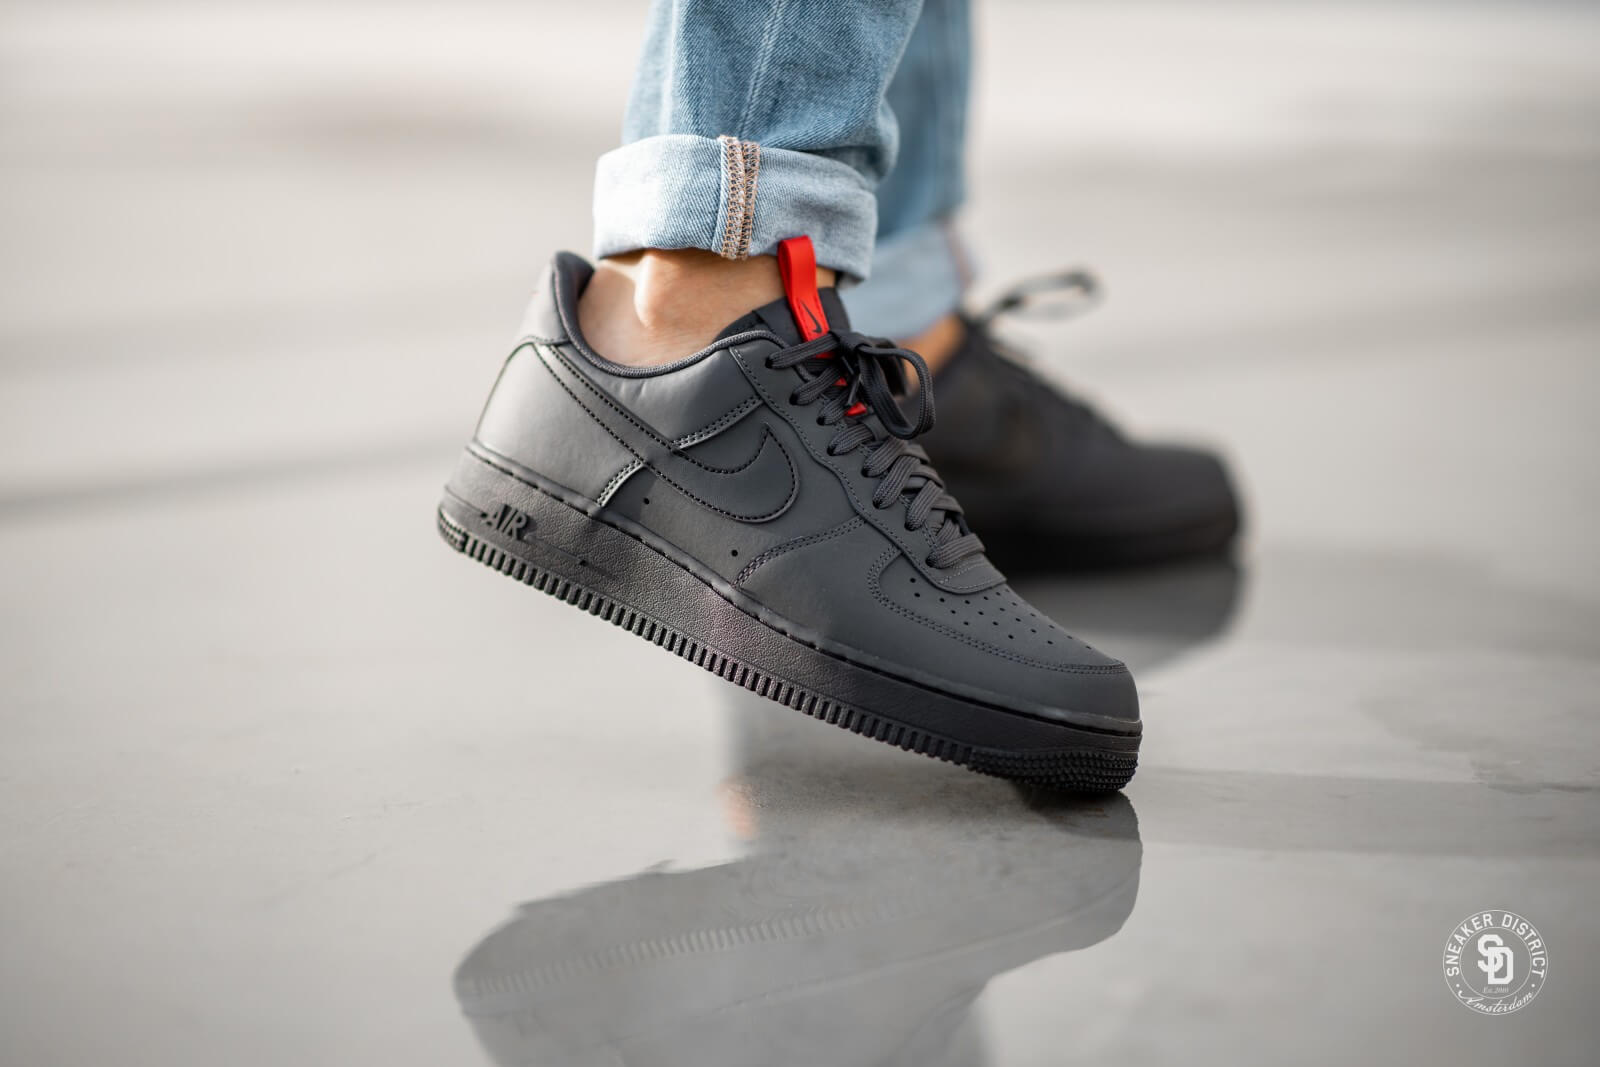 Nike Air Force 1 '07 Anthracite/Black-University Red